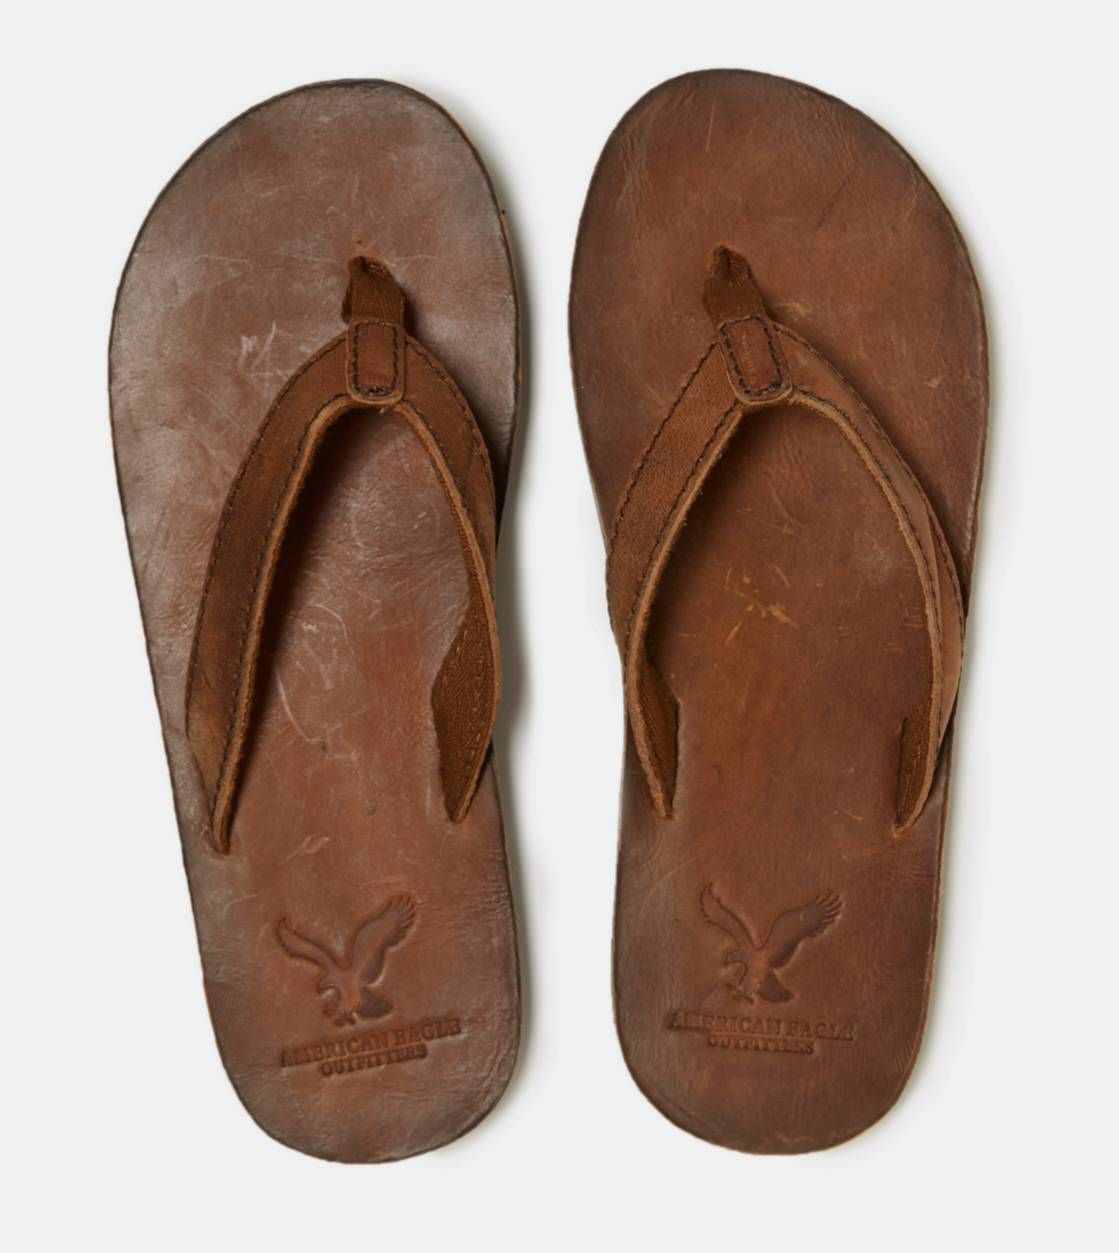 580a82cd3cd6 AEO Leather Flip-Flop Style  1215-6176